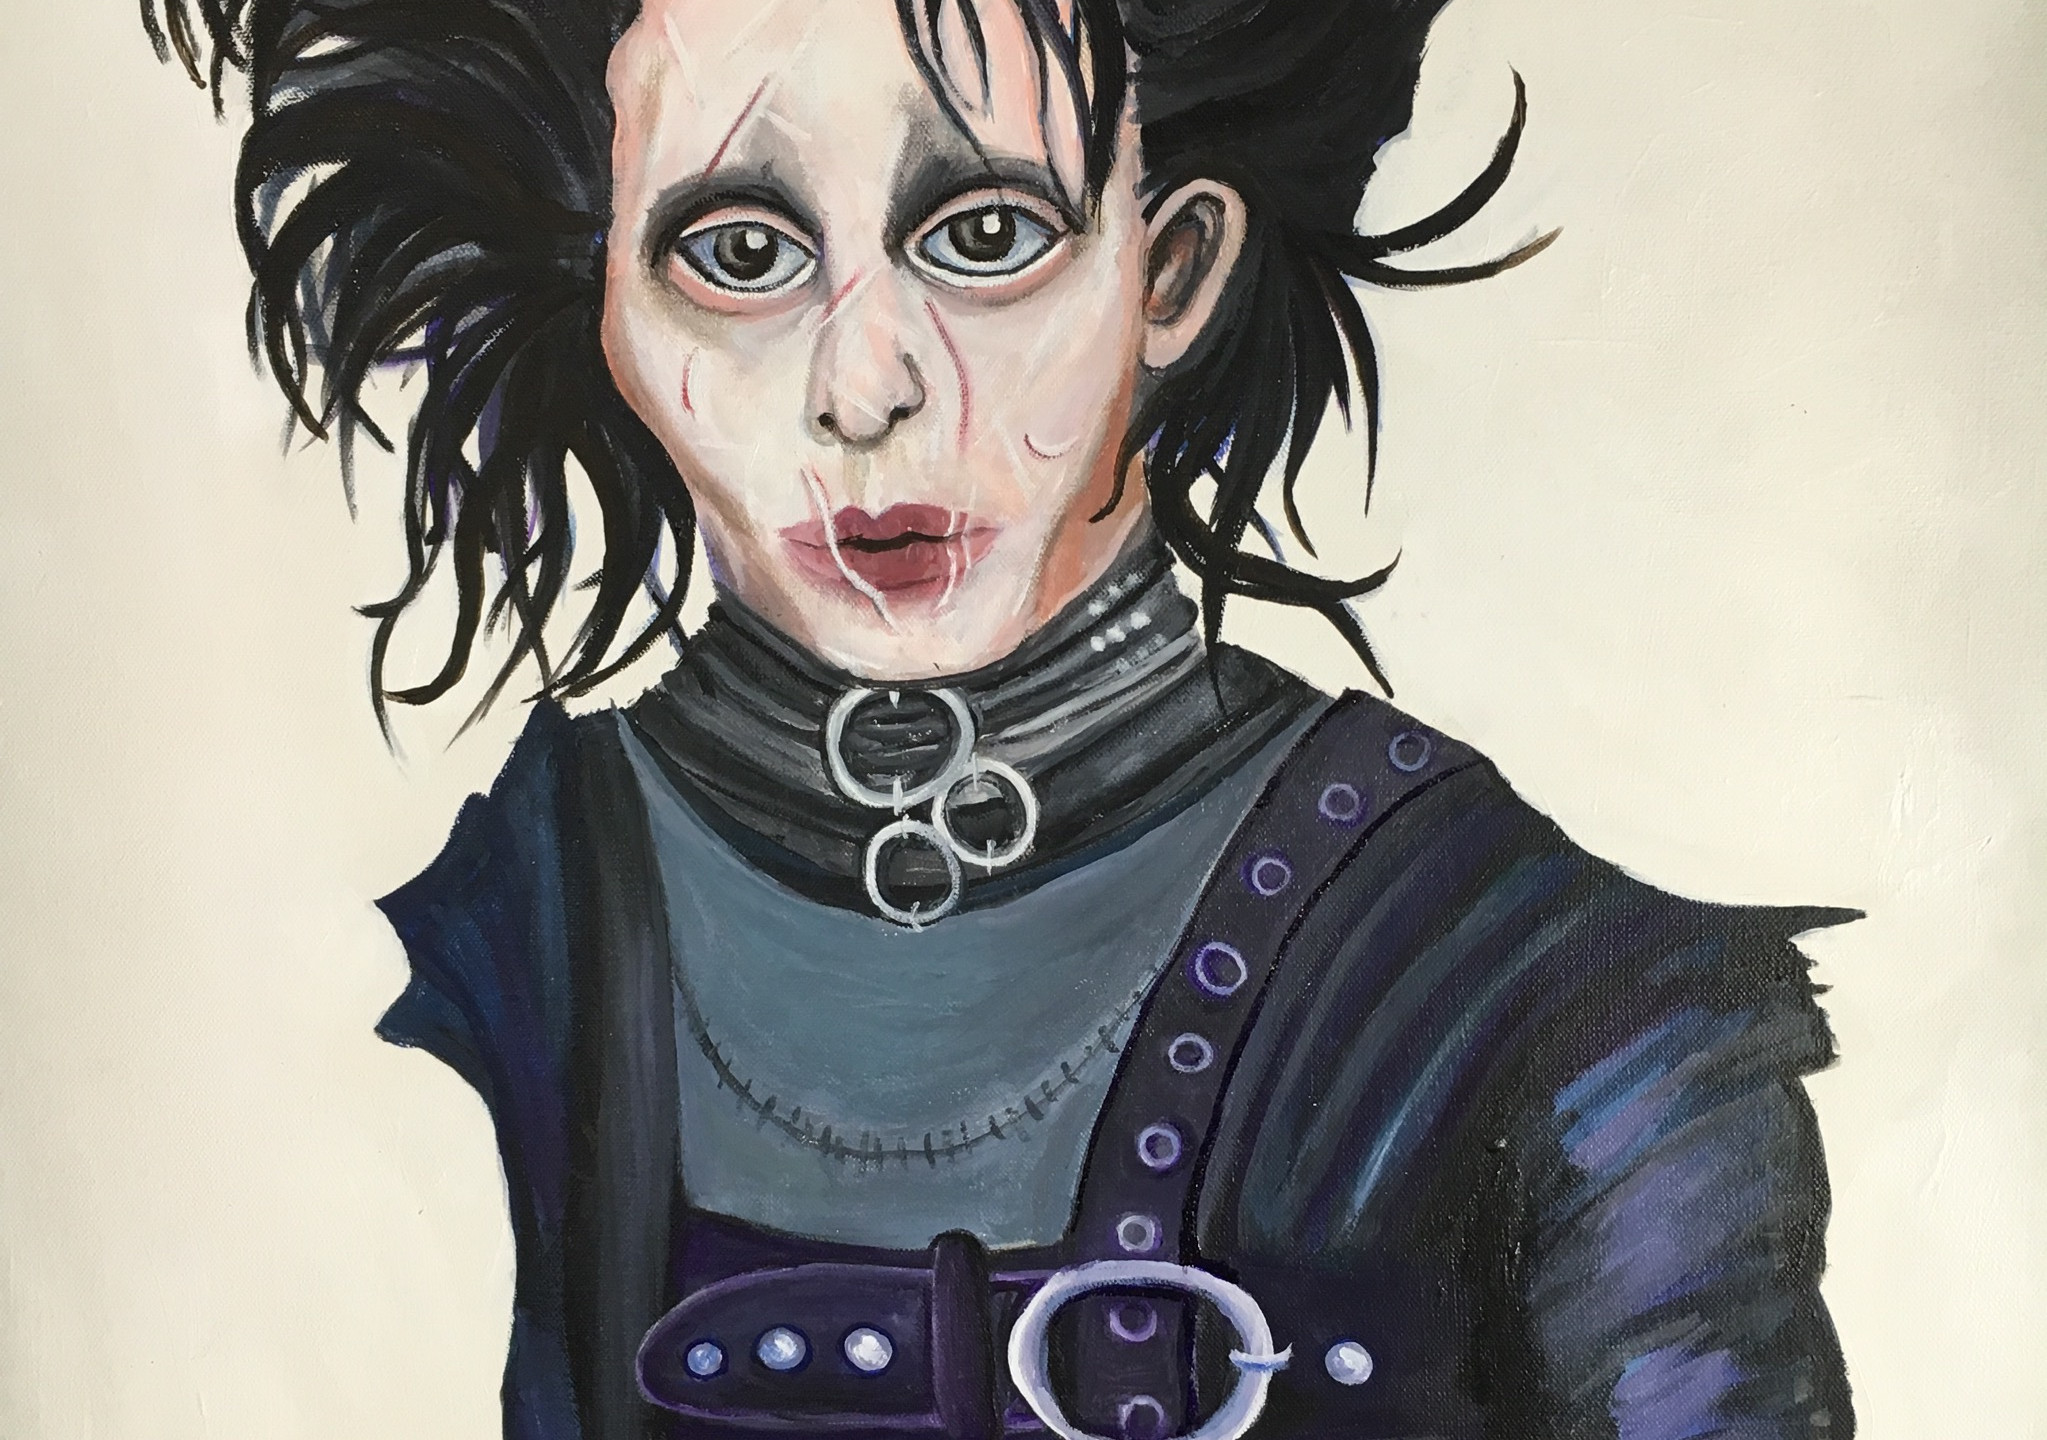 Edward Scissorhands Costume details